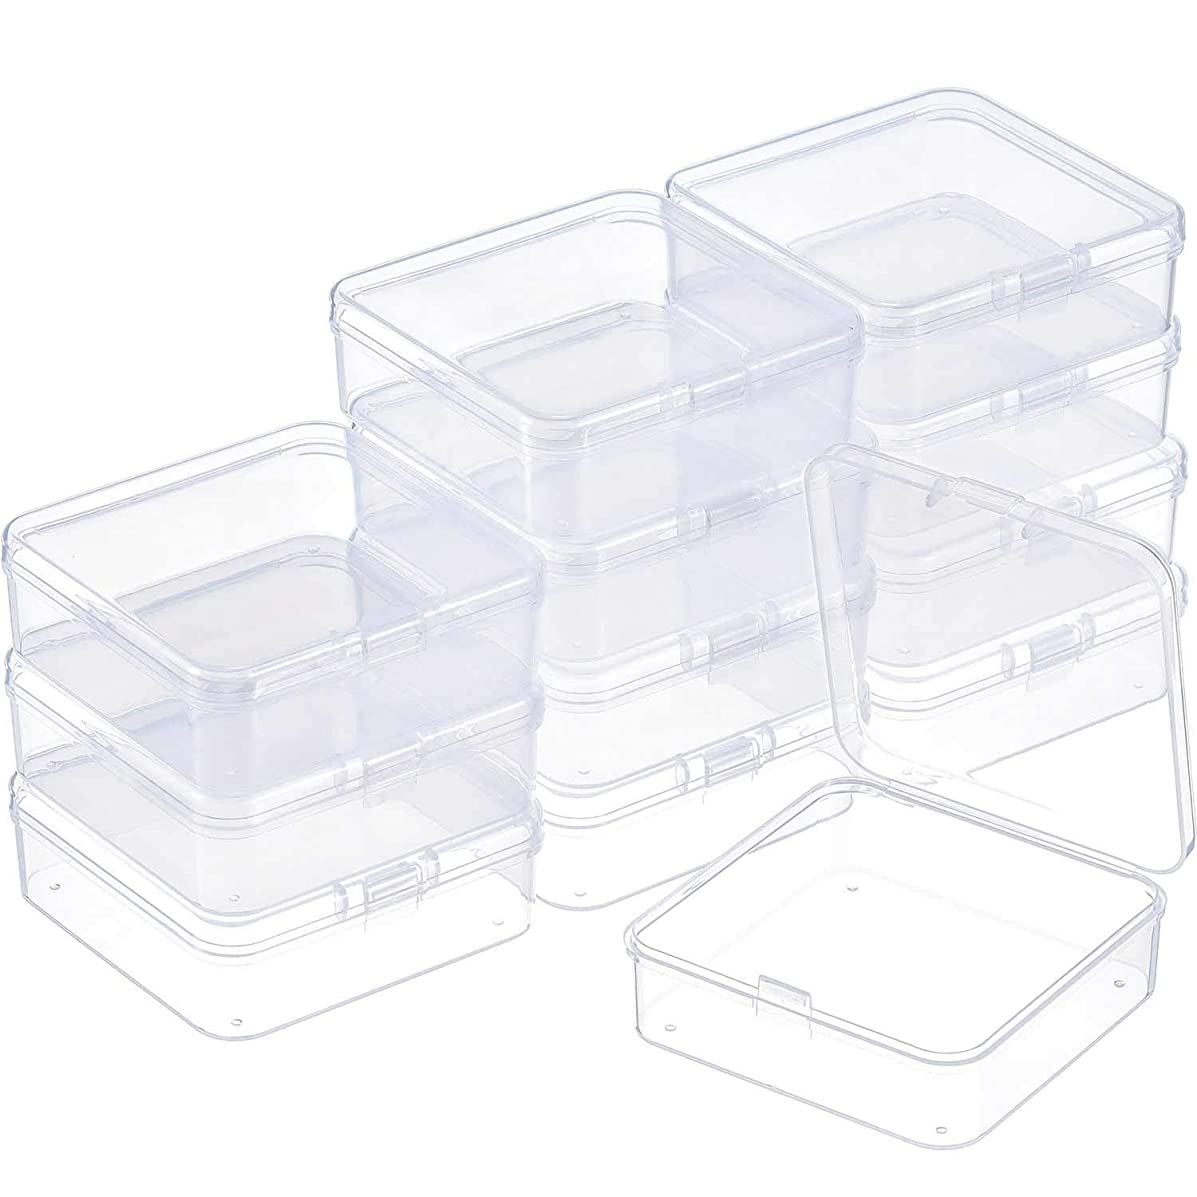 SATINIOR 12 Pack Clear Plastic Beads Storage Containers Box with Hinged Lid for Beads and More (2.9 x 2.9 x 1 Inch)